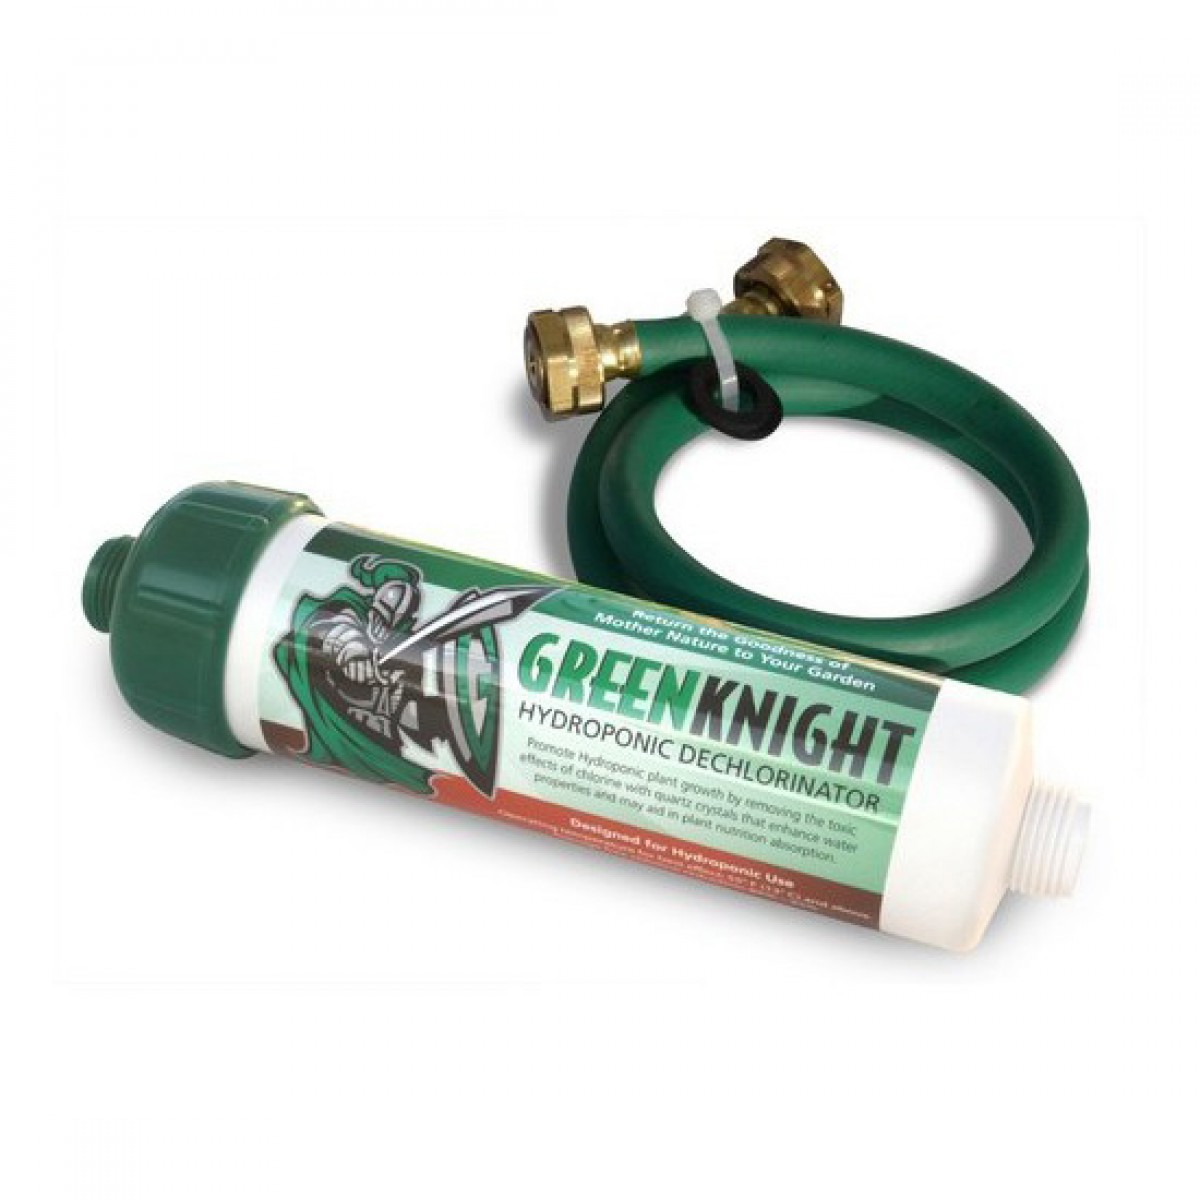 Rainshow 39 r green knight gk 1 hydroponic garden hose for Water garden filter systems